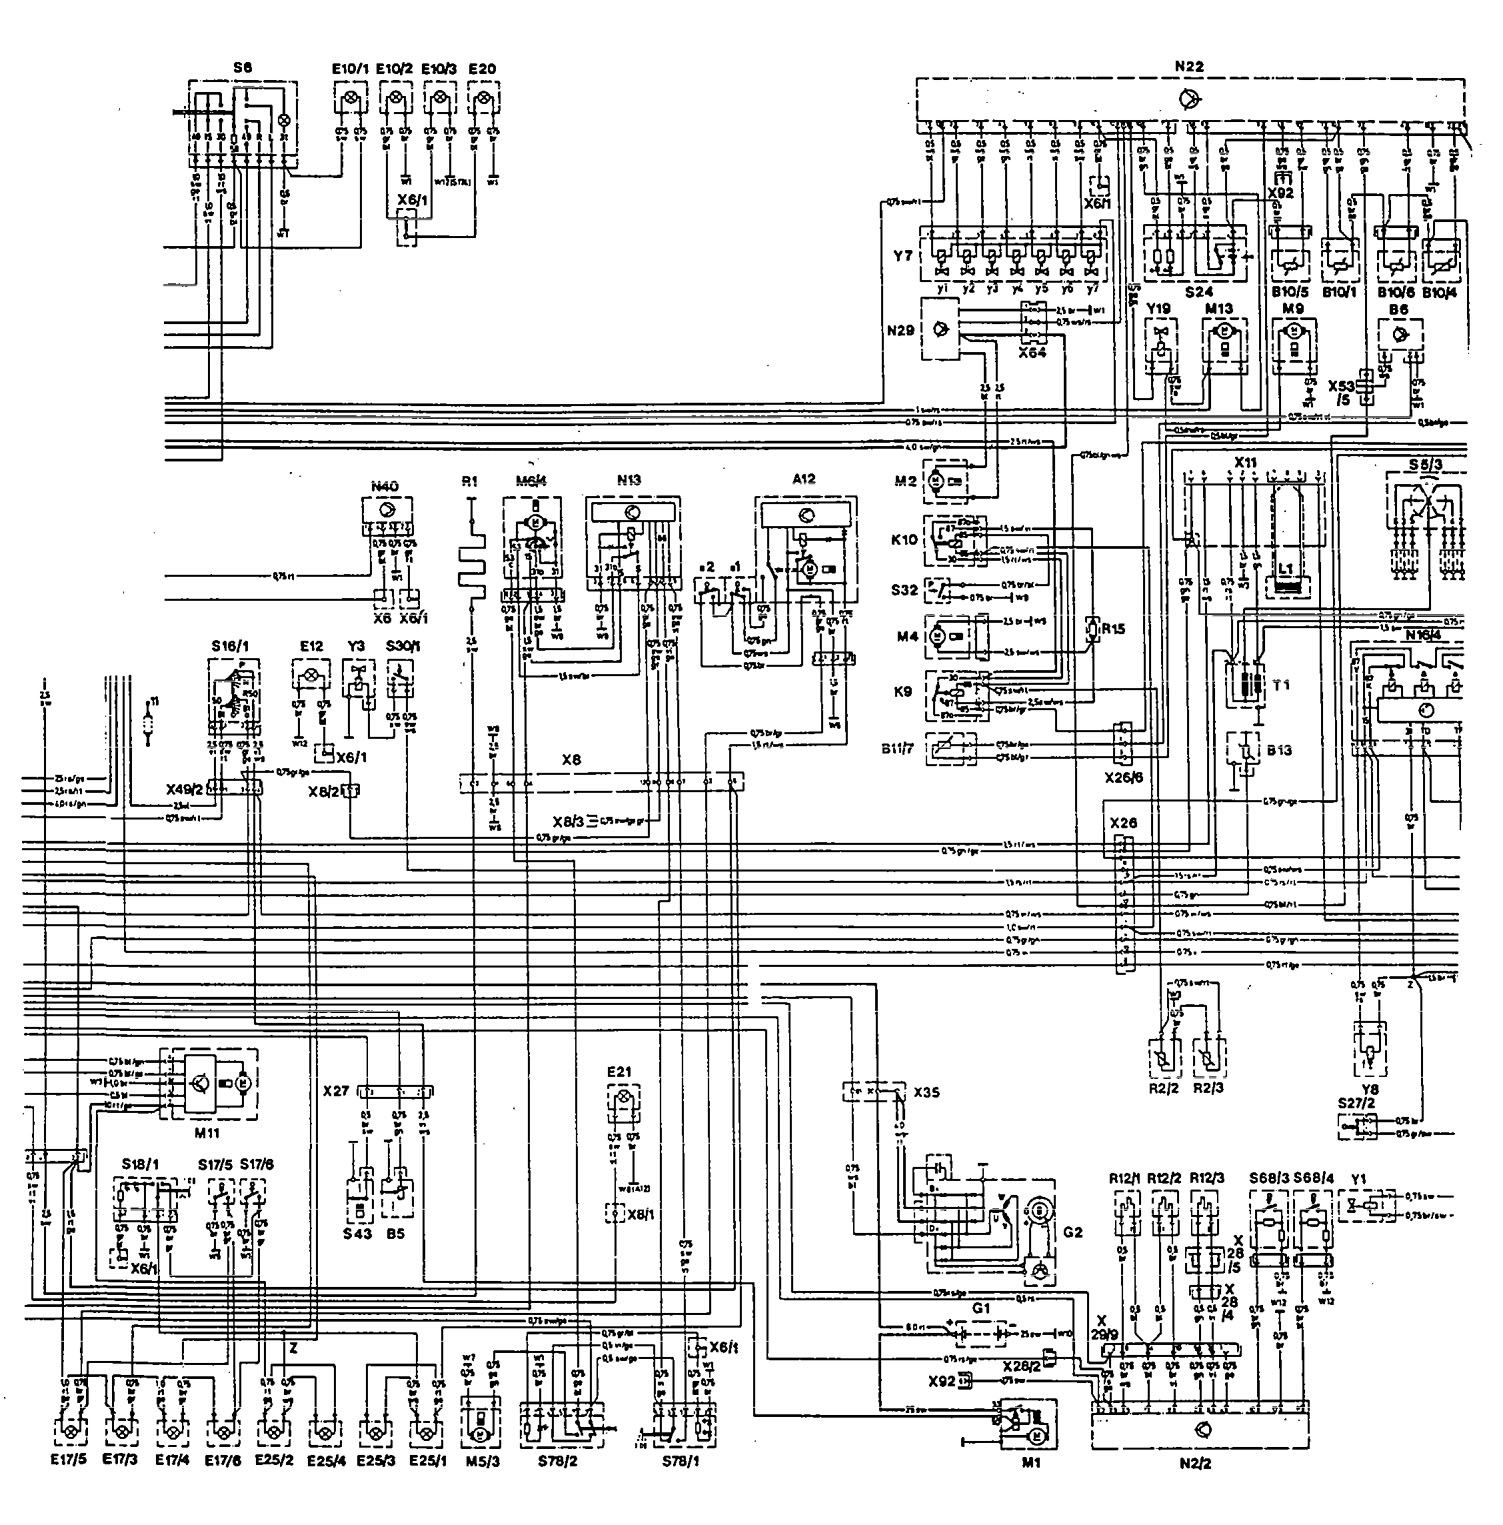 mercedes benz wiring diagrams mercedes benz 300te  1992 1993  wiring diagrams exterior mercedes benz w205 wiring diagrams mercedes benz 300te  1992 1993